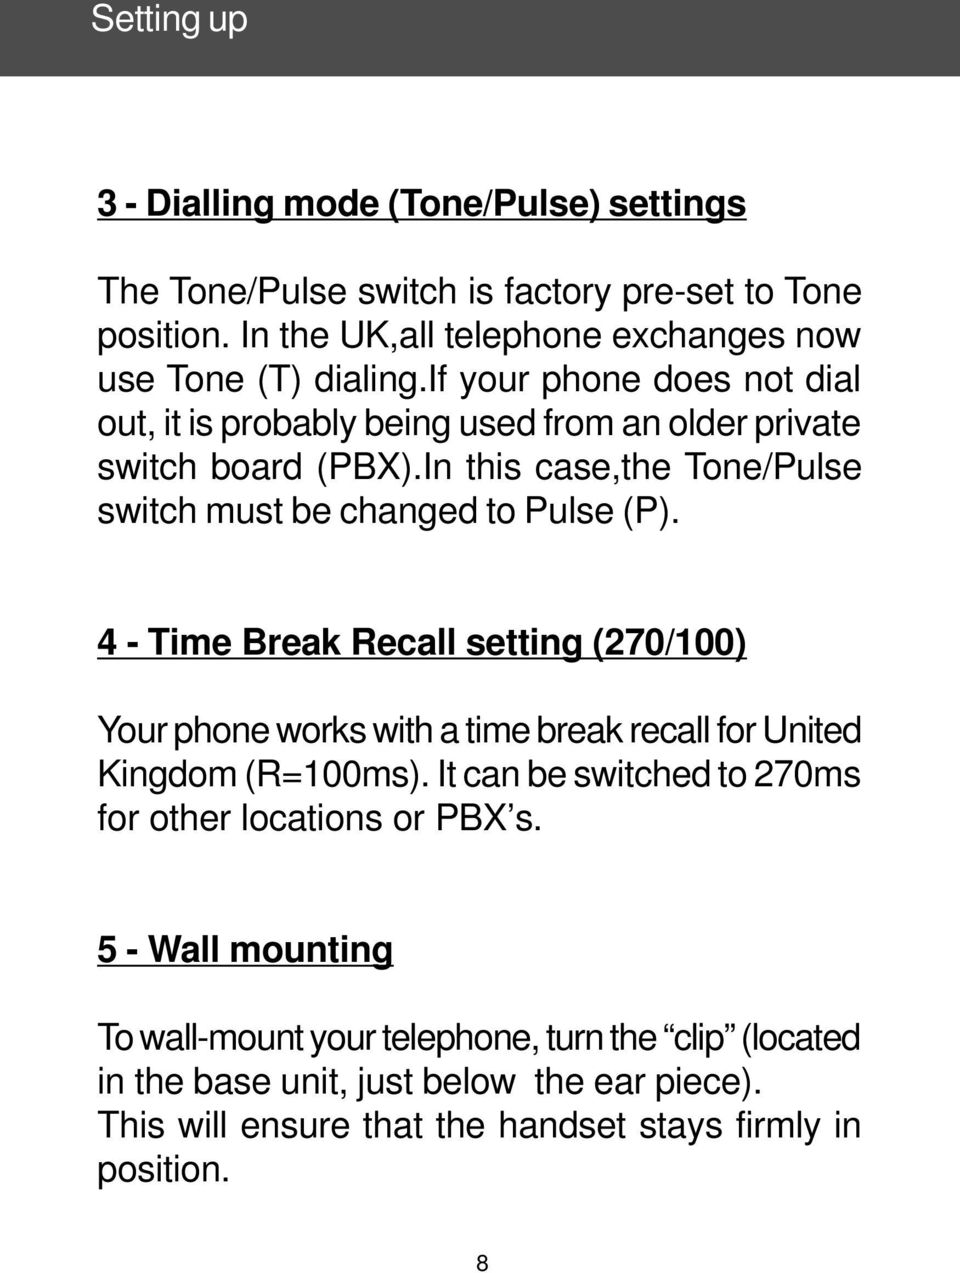 4 - Time Break Recall setting (270/100) Your phone works with a time break recall for United Kingdom (R=100ms). It can be switched to 270ms for other locations or PBX s.